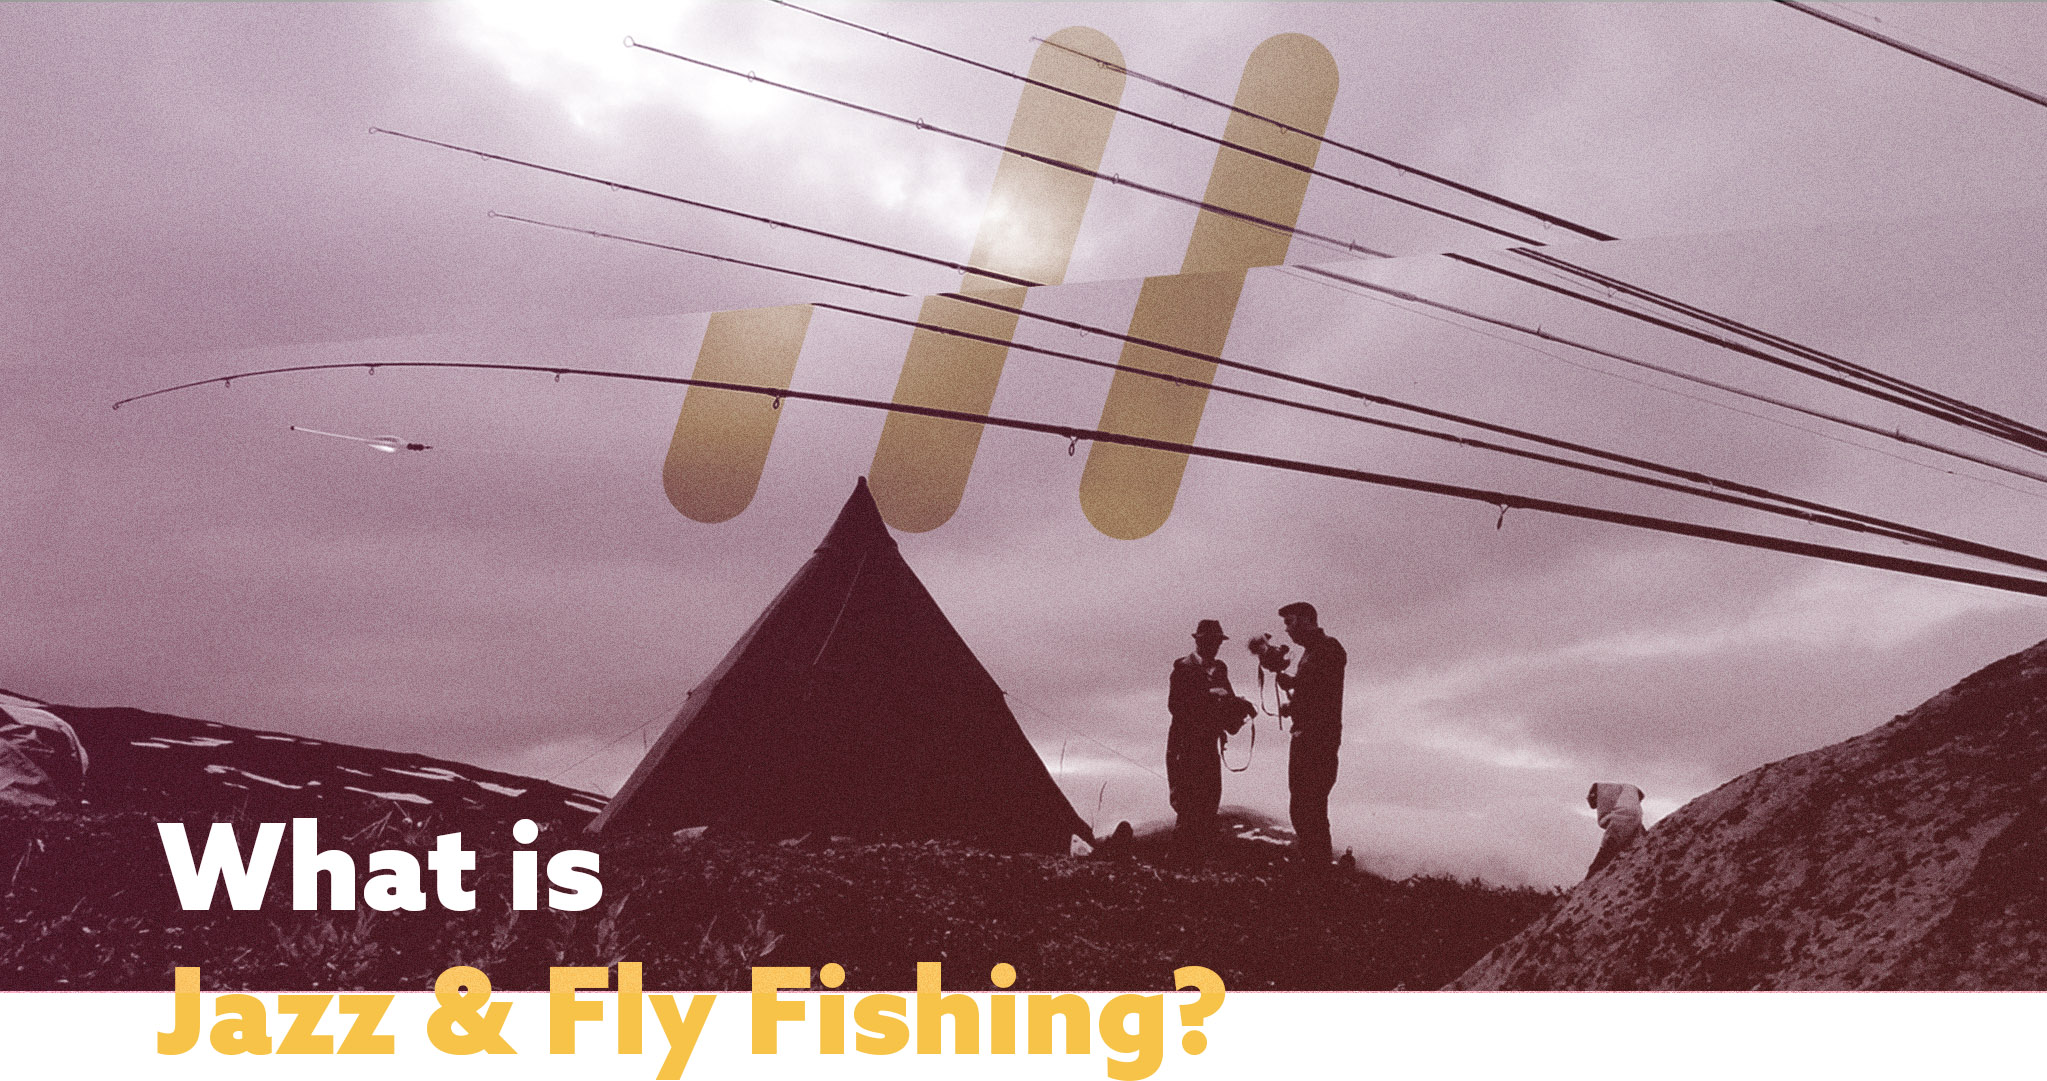 What is Jazz & Fly Fishing?